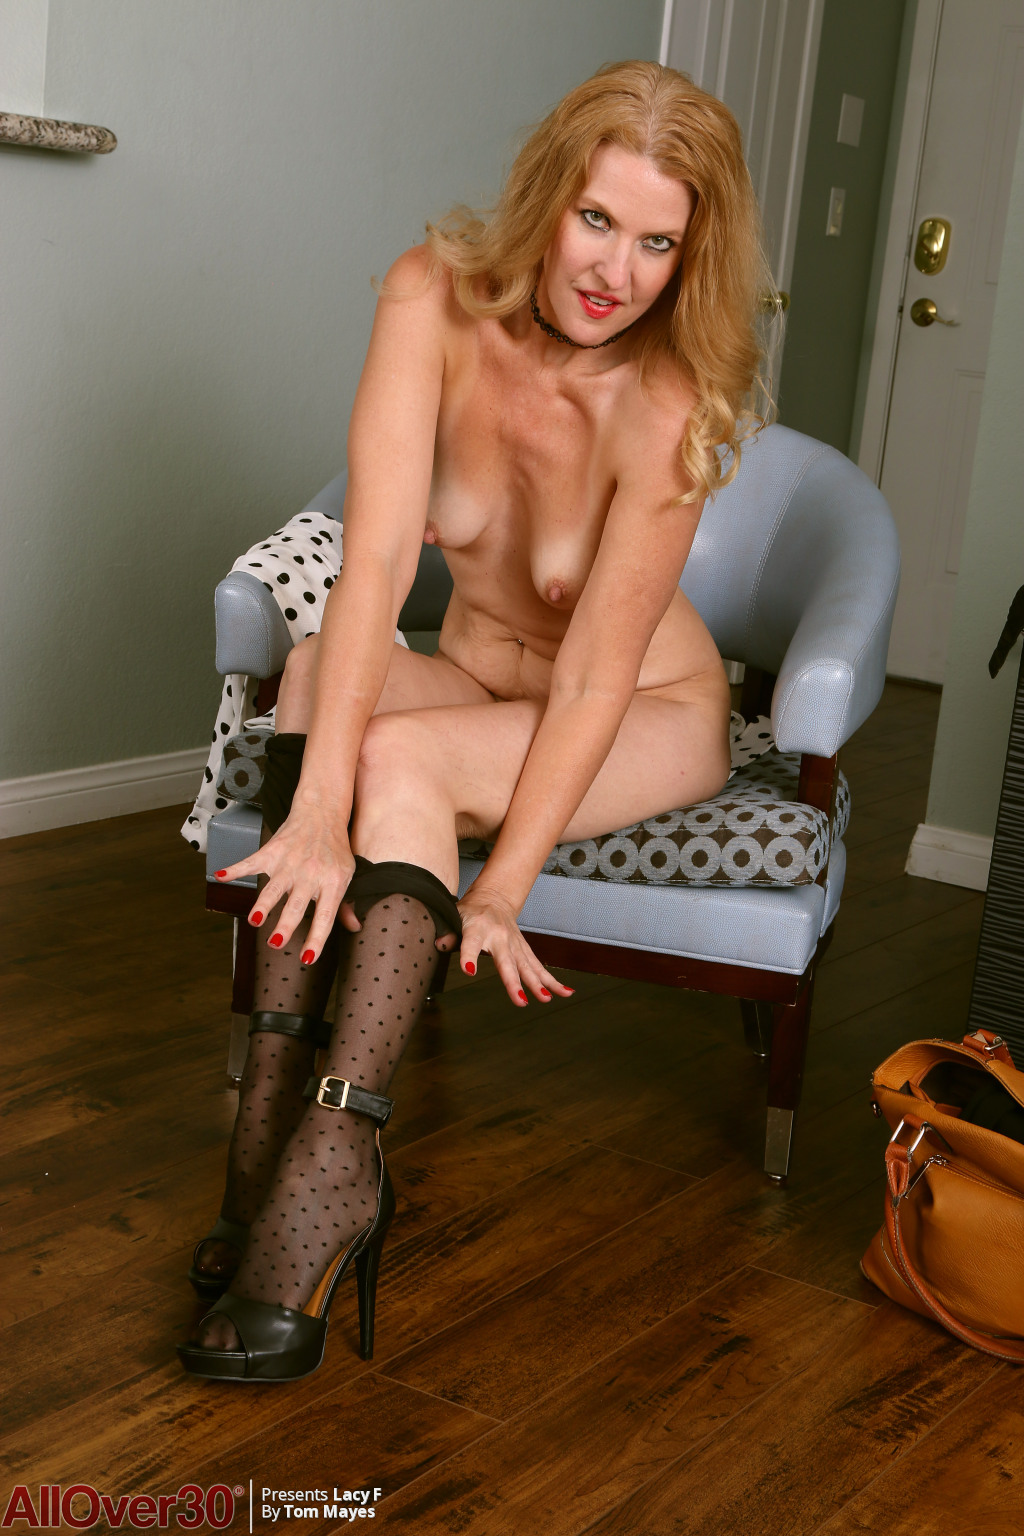 lacy-f-polka-dots-and-stockings-14